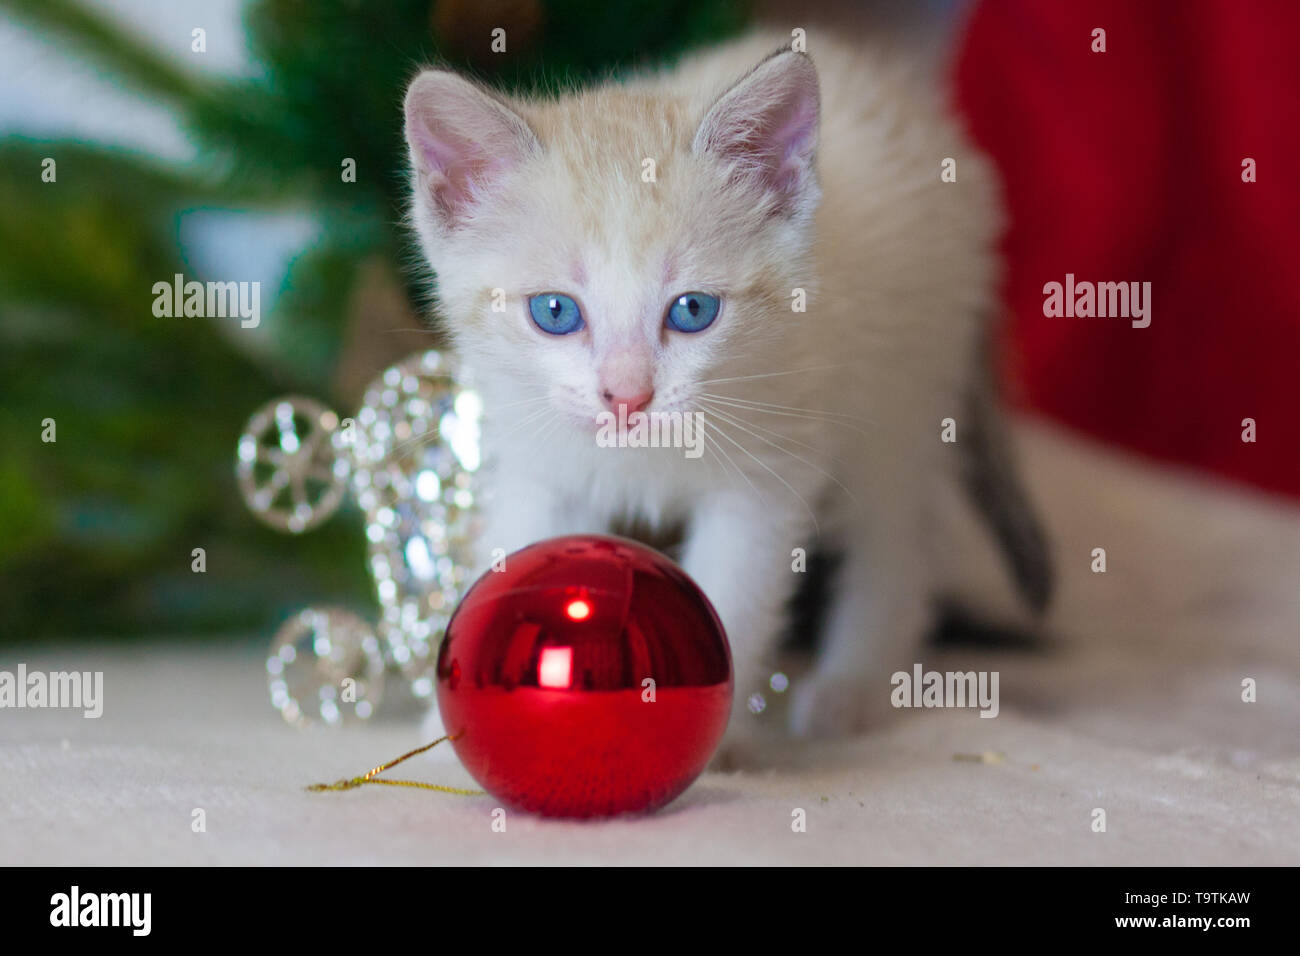 A small kitten with a Christmas toy. Cat on Christmas tree. Christmas animals. Cat symbol of the new year. - Stock Image